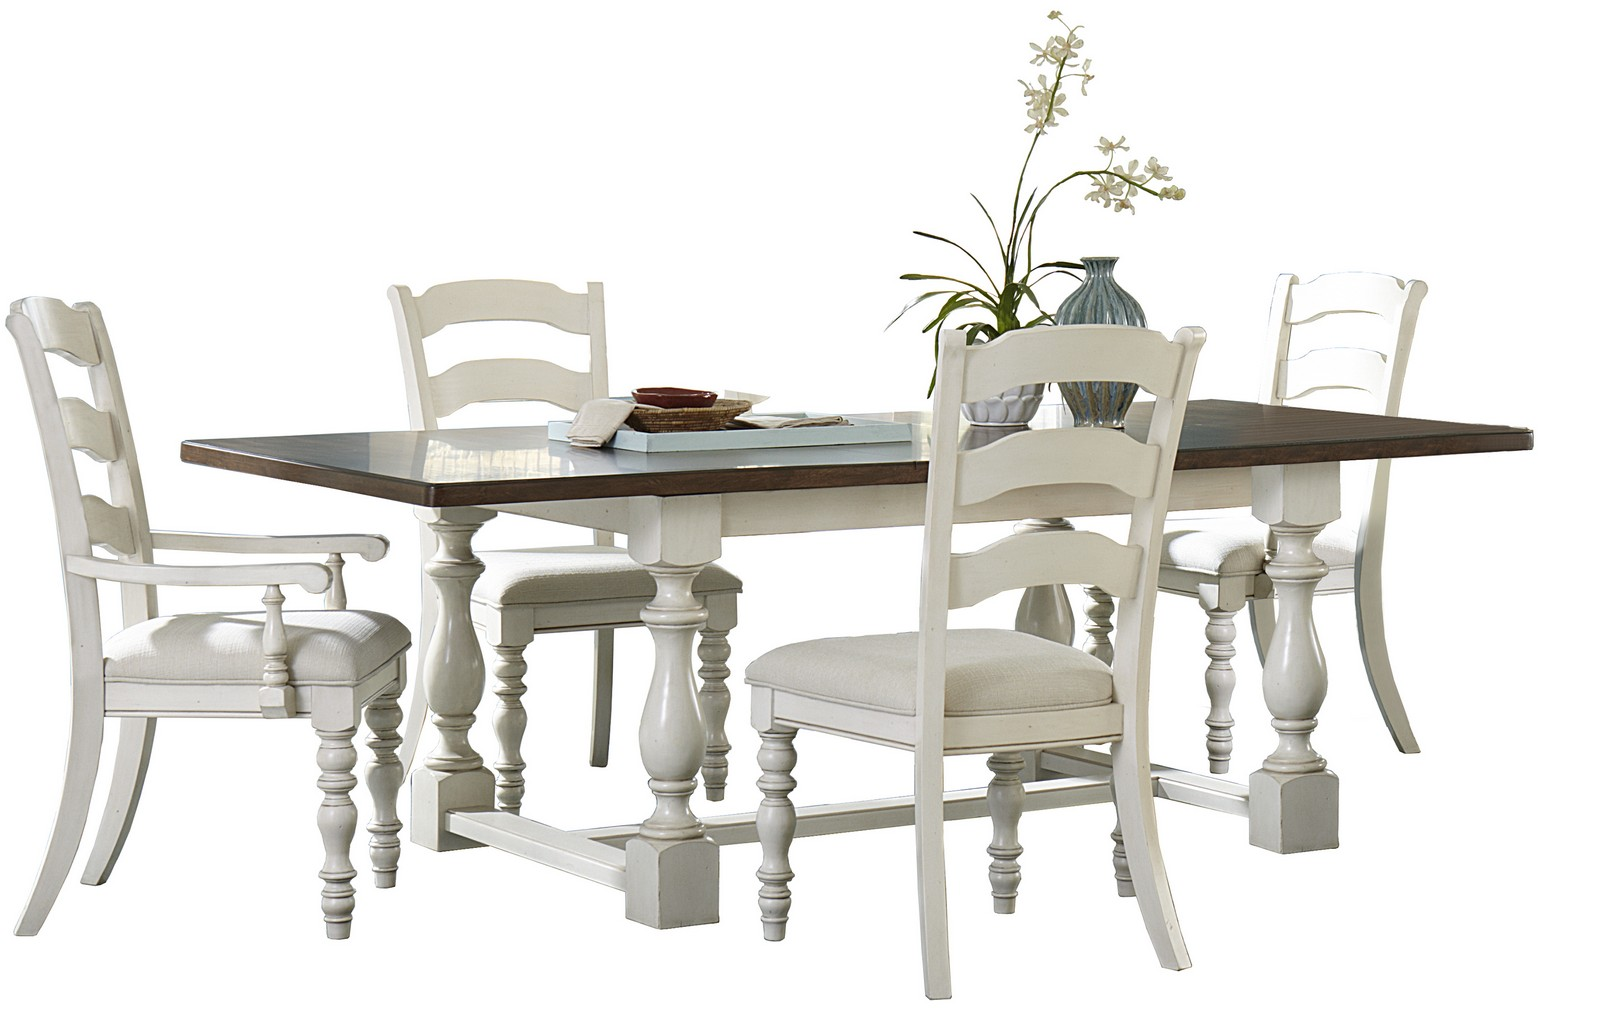 Hillsdale Pine Island 5 PC Trestle Dining Set with Ladder Back Chairs - Old White